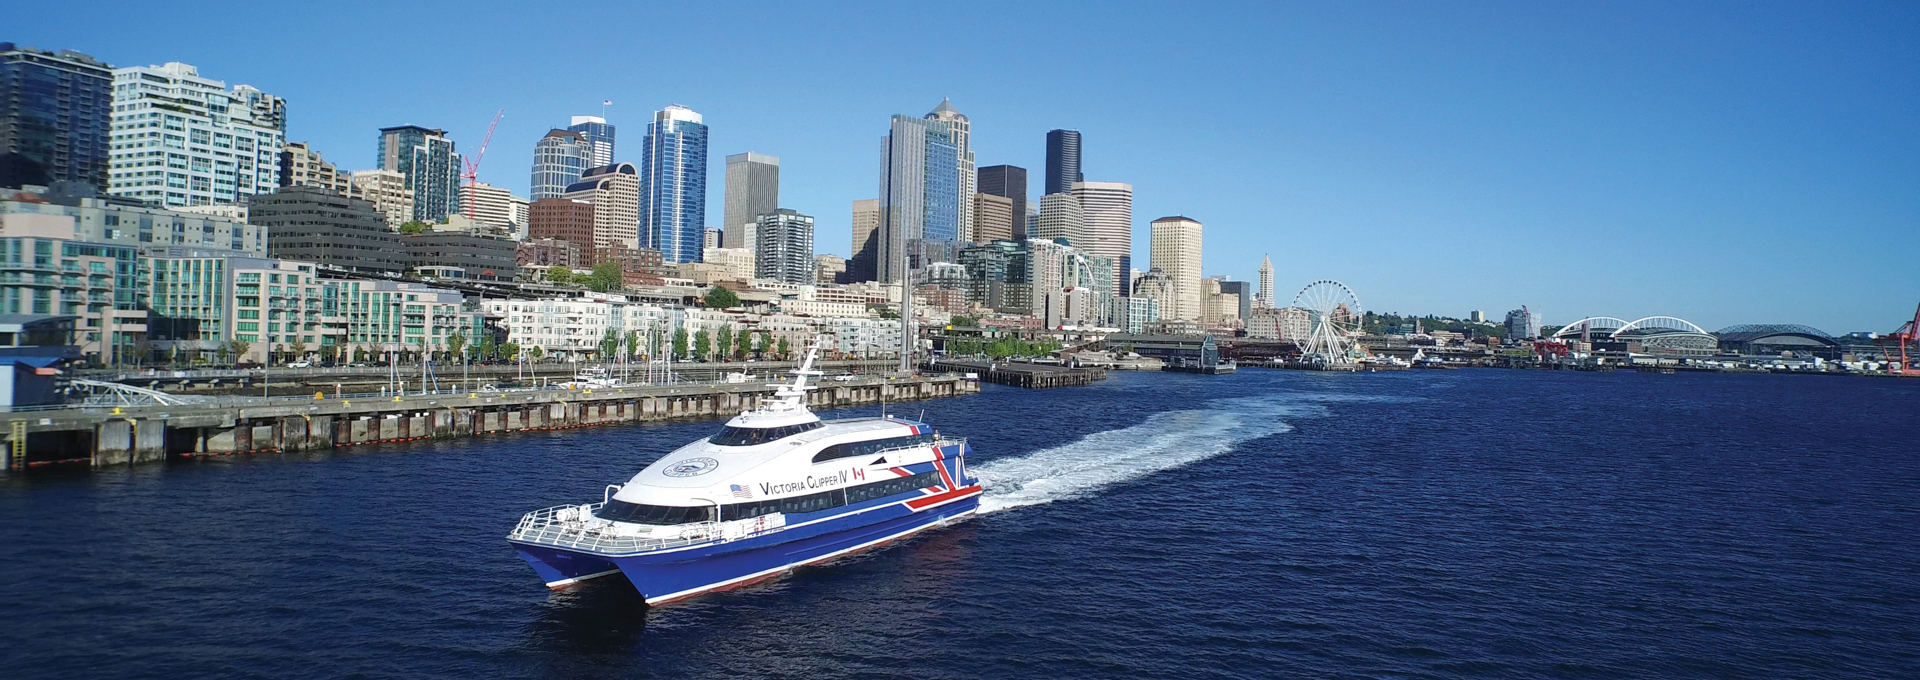 Clipper Vacations offer round trips from Seattle to Victoria. With Victoria Clipper coupons, you can enjoy the ease and breeze of maritime travel at a discounted price. The coupons are obtained using a Clipper Vacations promo code. Clippers Vacations is the best way to enjoy a maritime experience using the Victoria Clipper's fleet ferry.